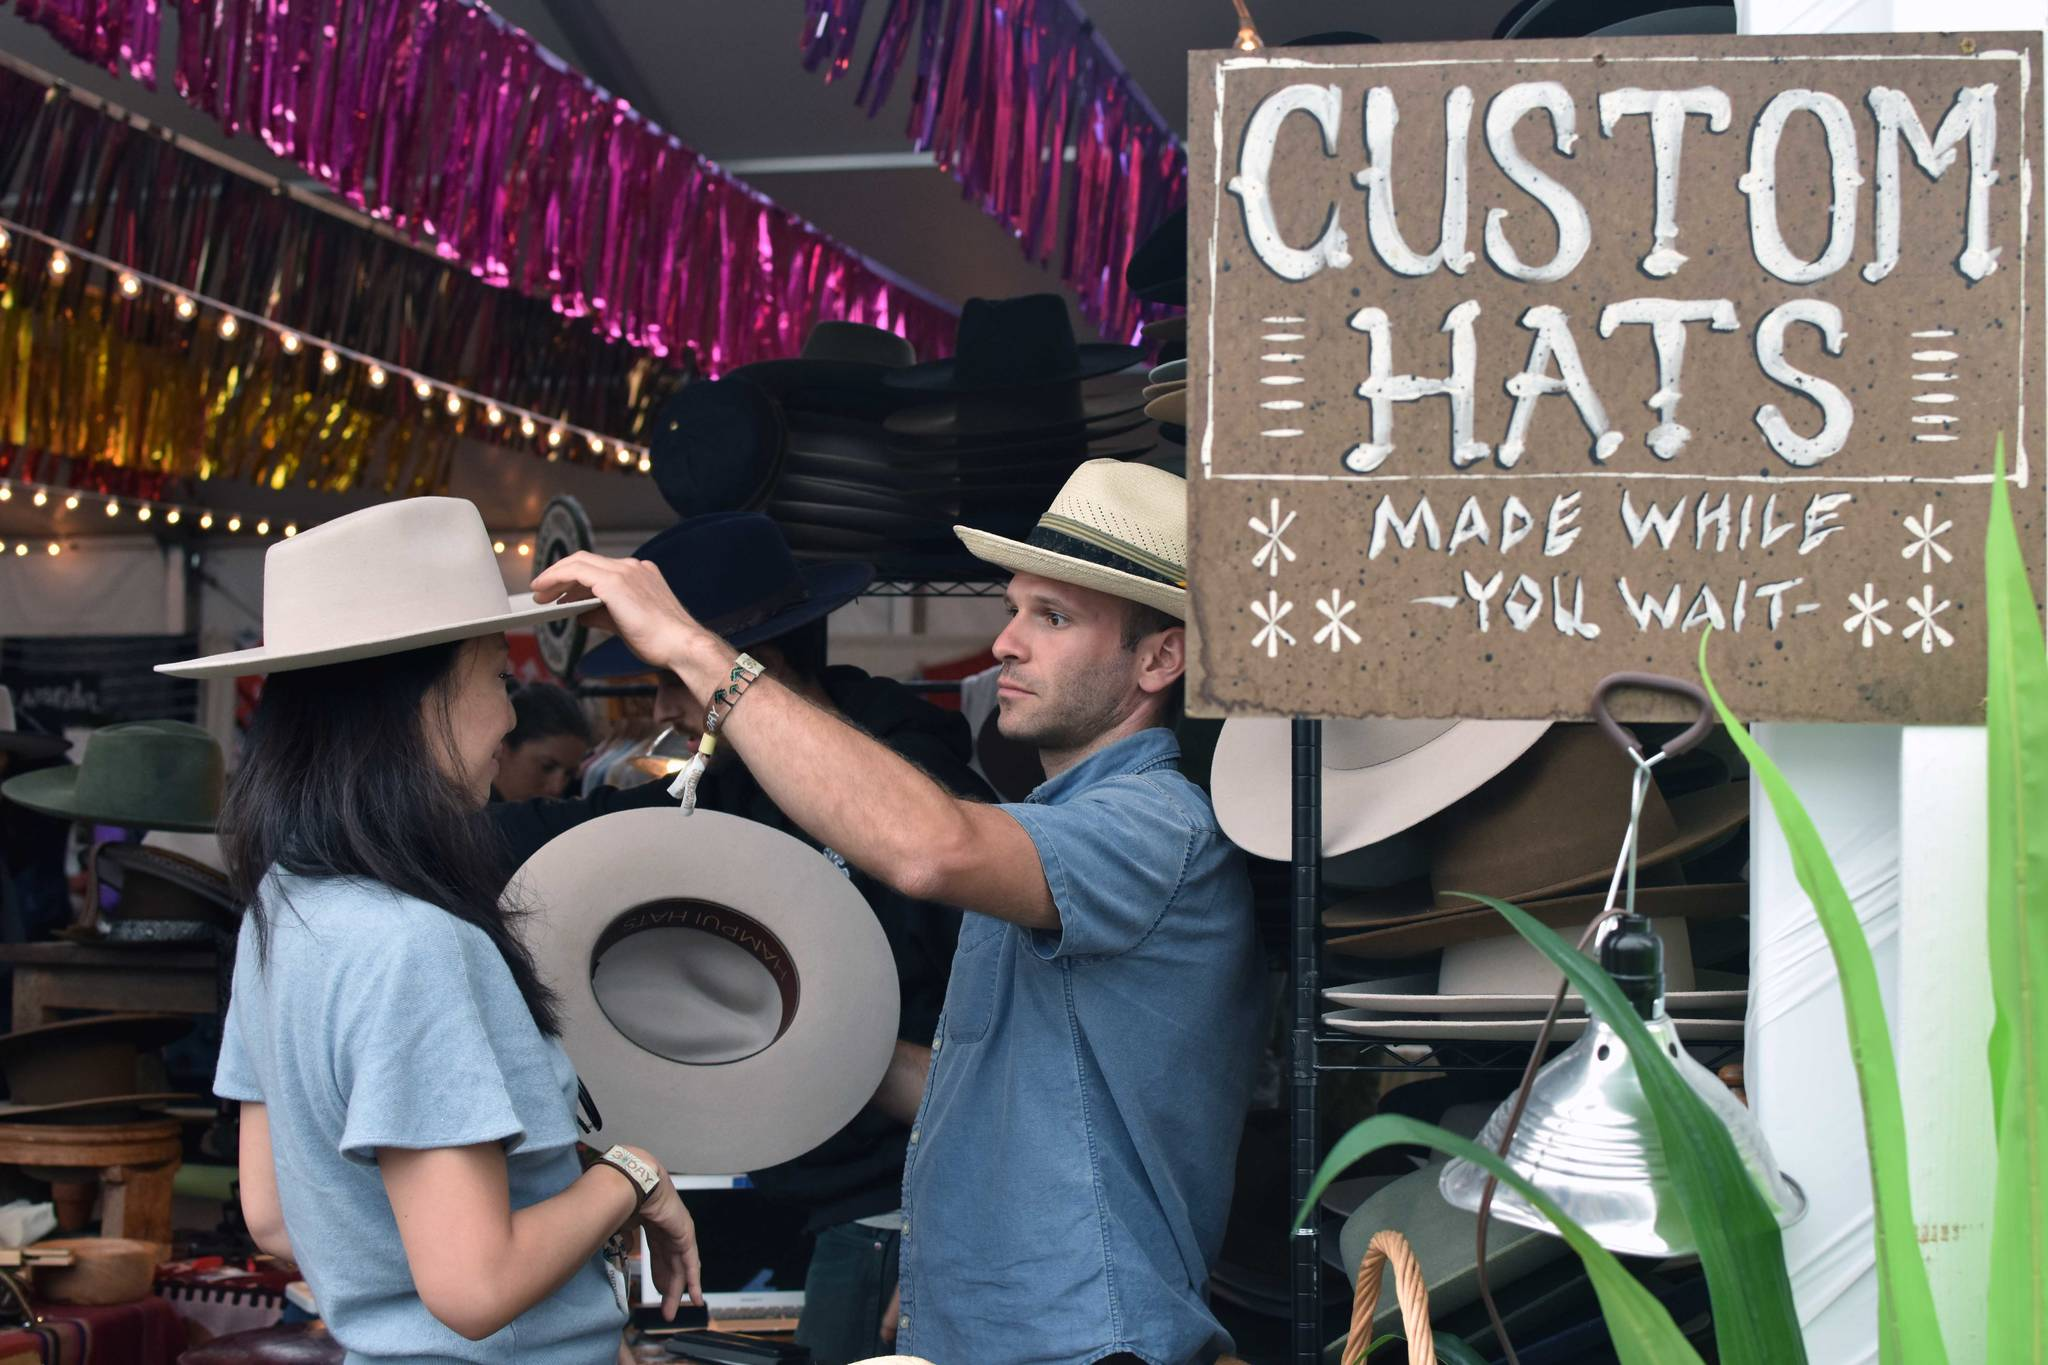 A person tries on hats at the market place at Outside Lands Festival on Saturday, August 10, 2019. (Lola Chase/ Special to S.F. Examiner)